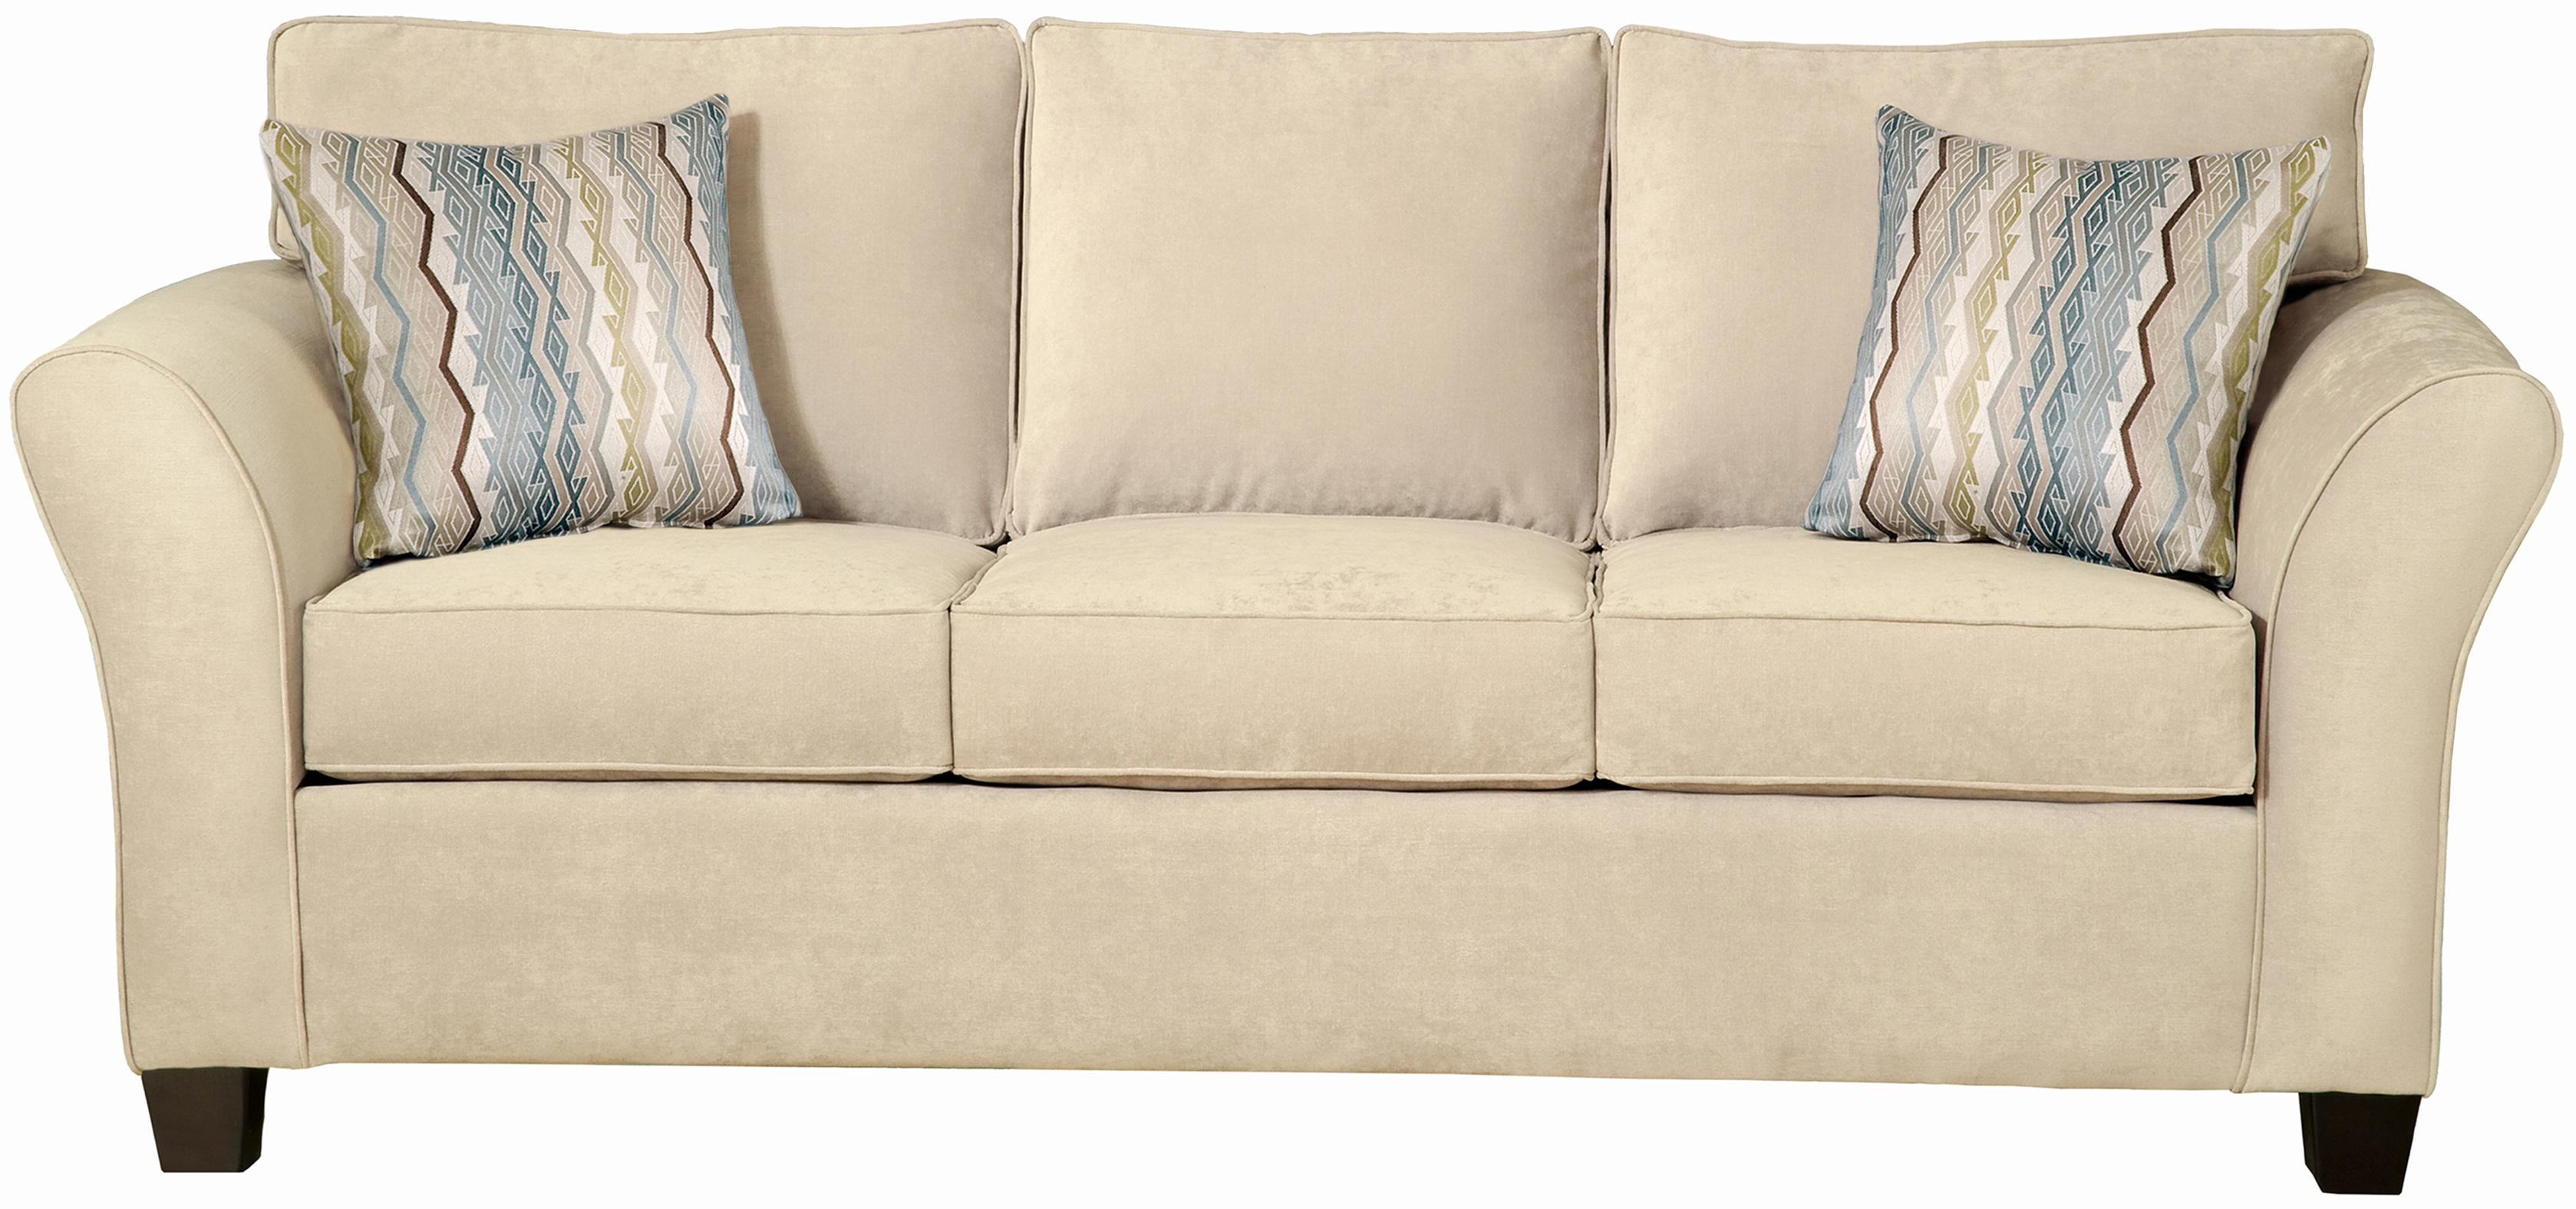 addison sofa ashley furniture large purple throws any more reviews on sectional